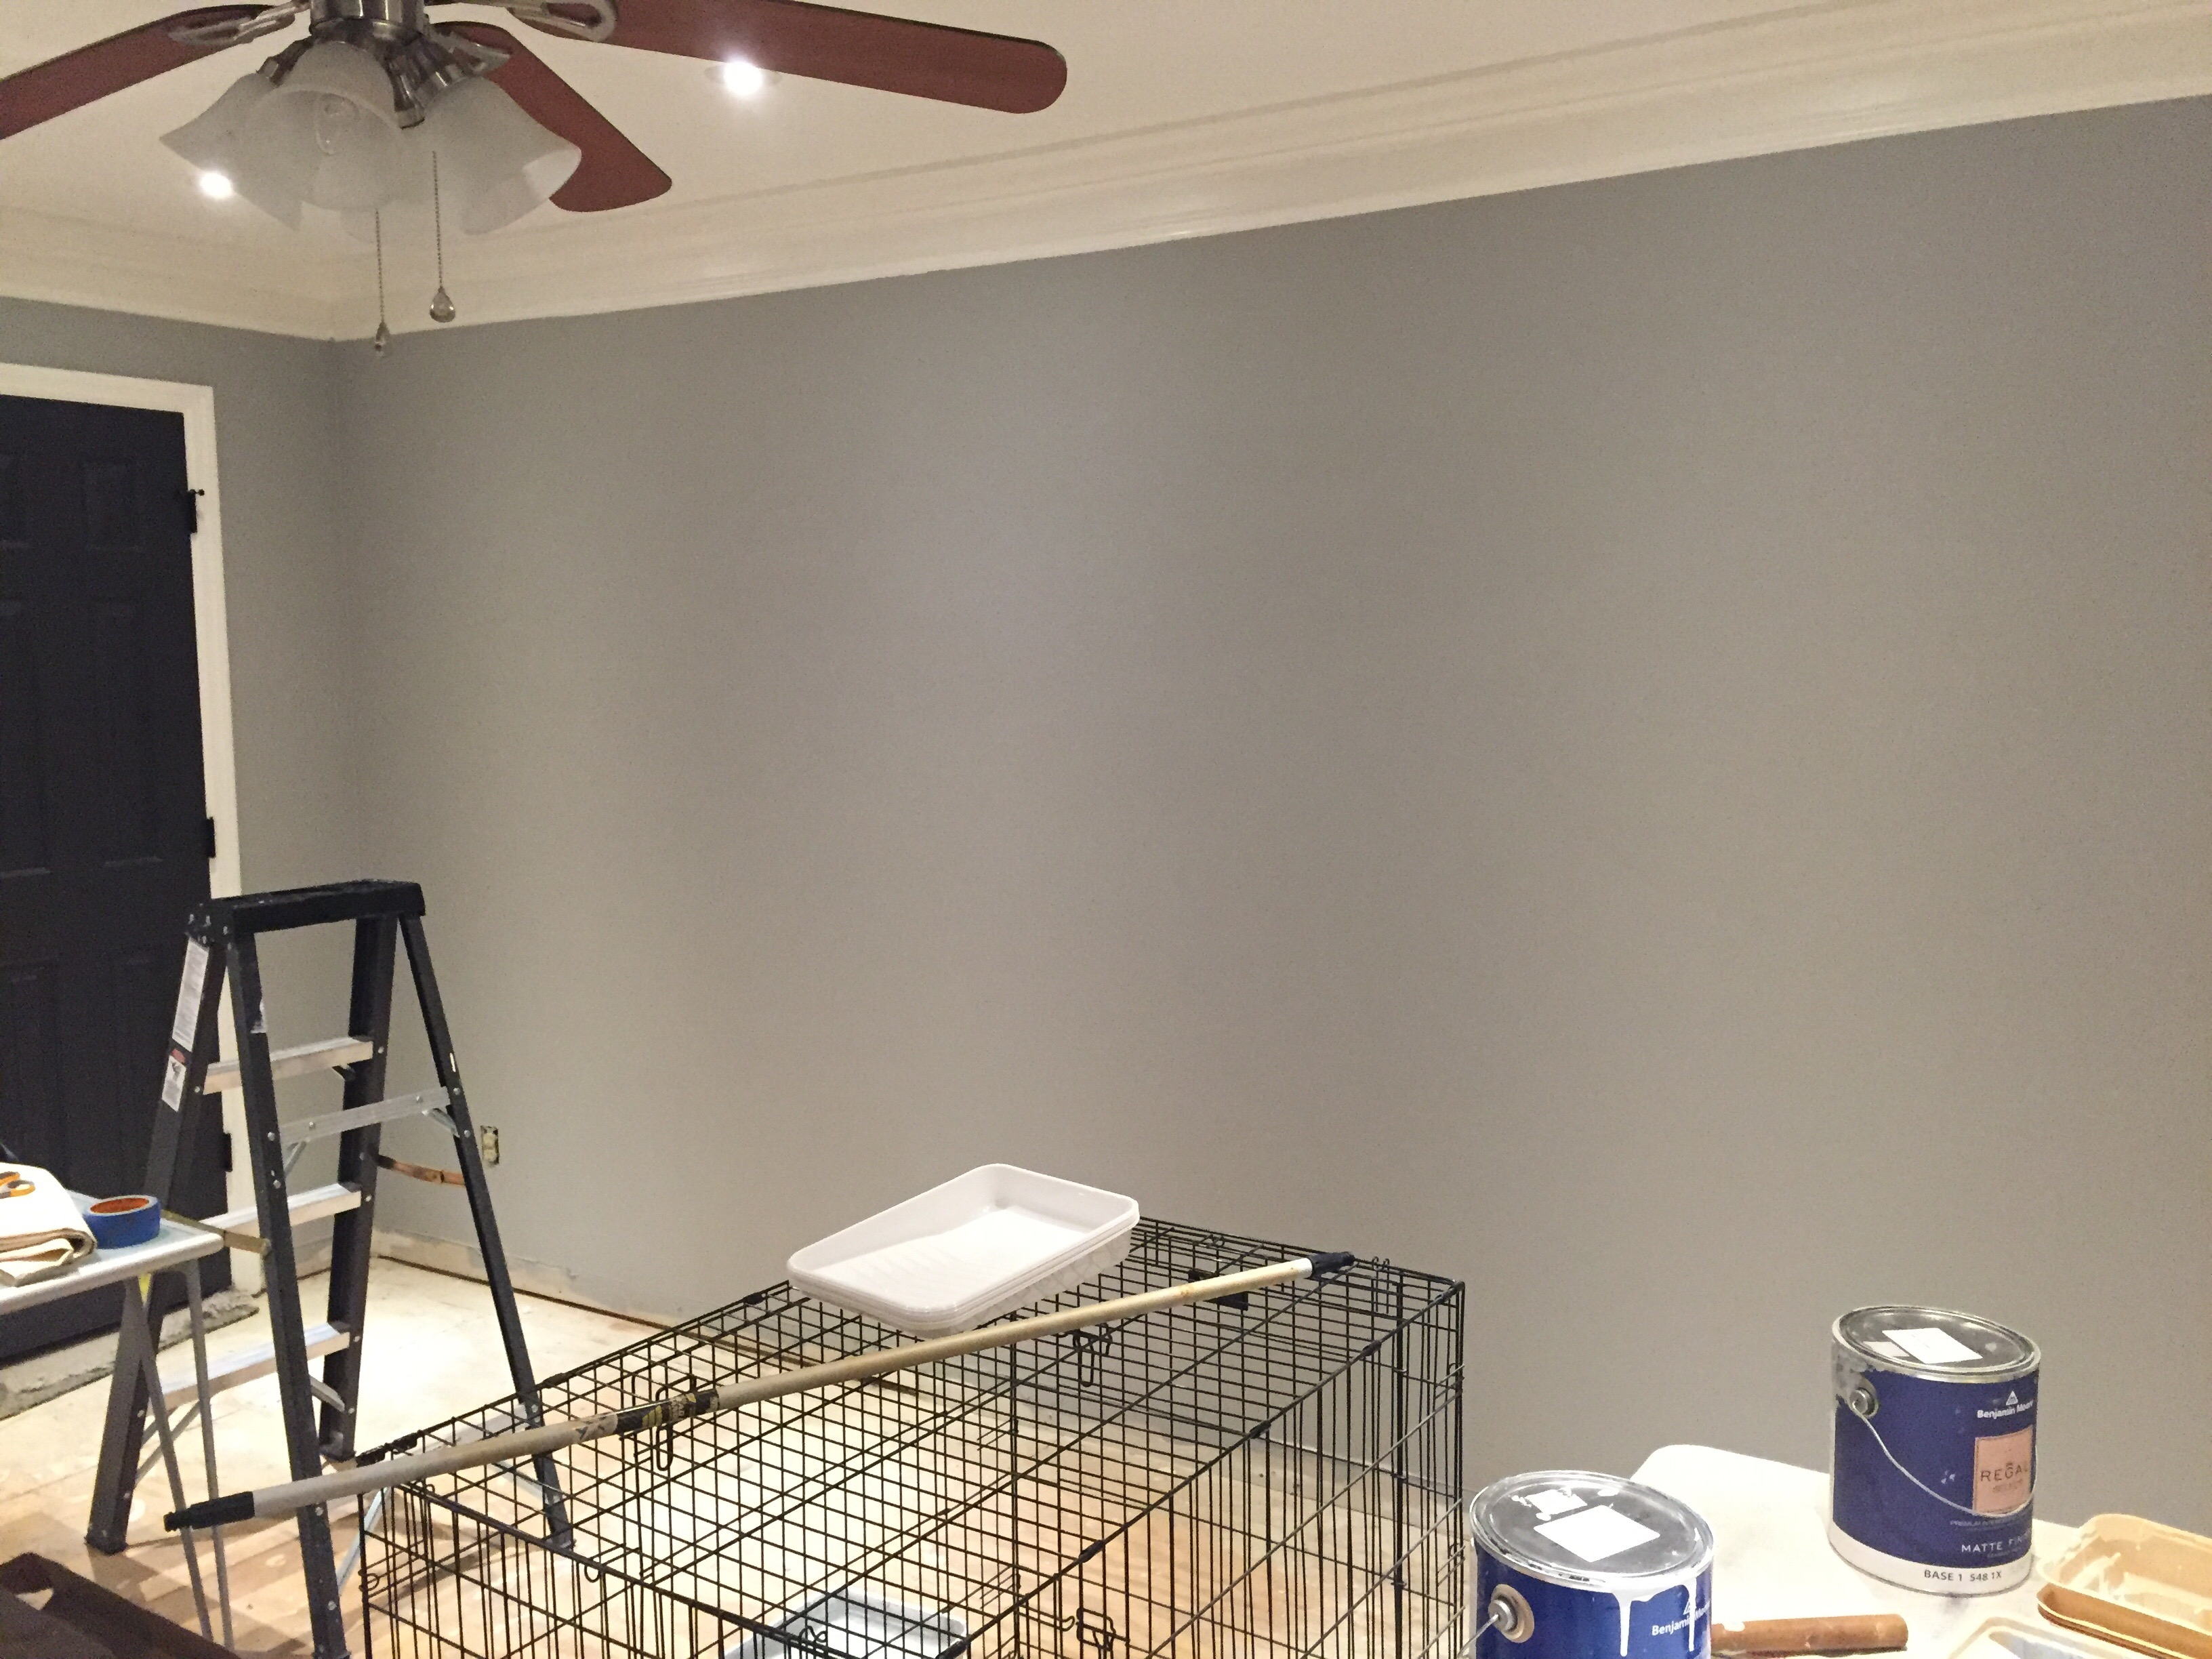 Benjamin Moore Chelsea Gray Paint Color for a Bonus Room Makeover | DIY Room Makeover | Use Paint for a cheap and easy room update